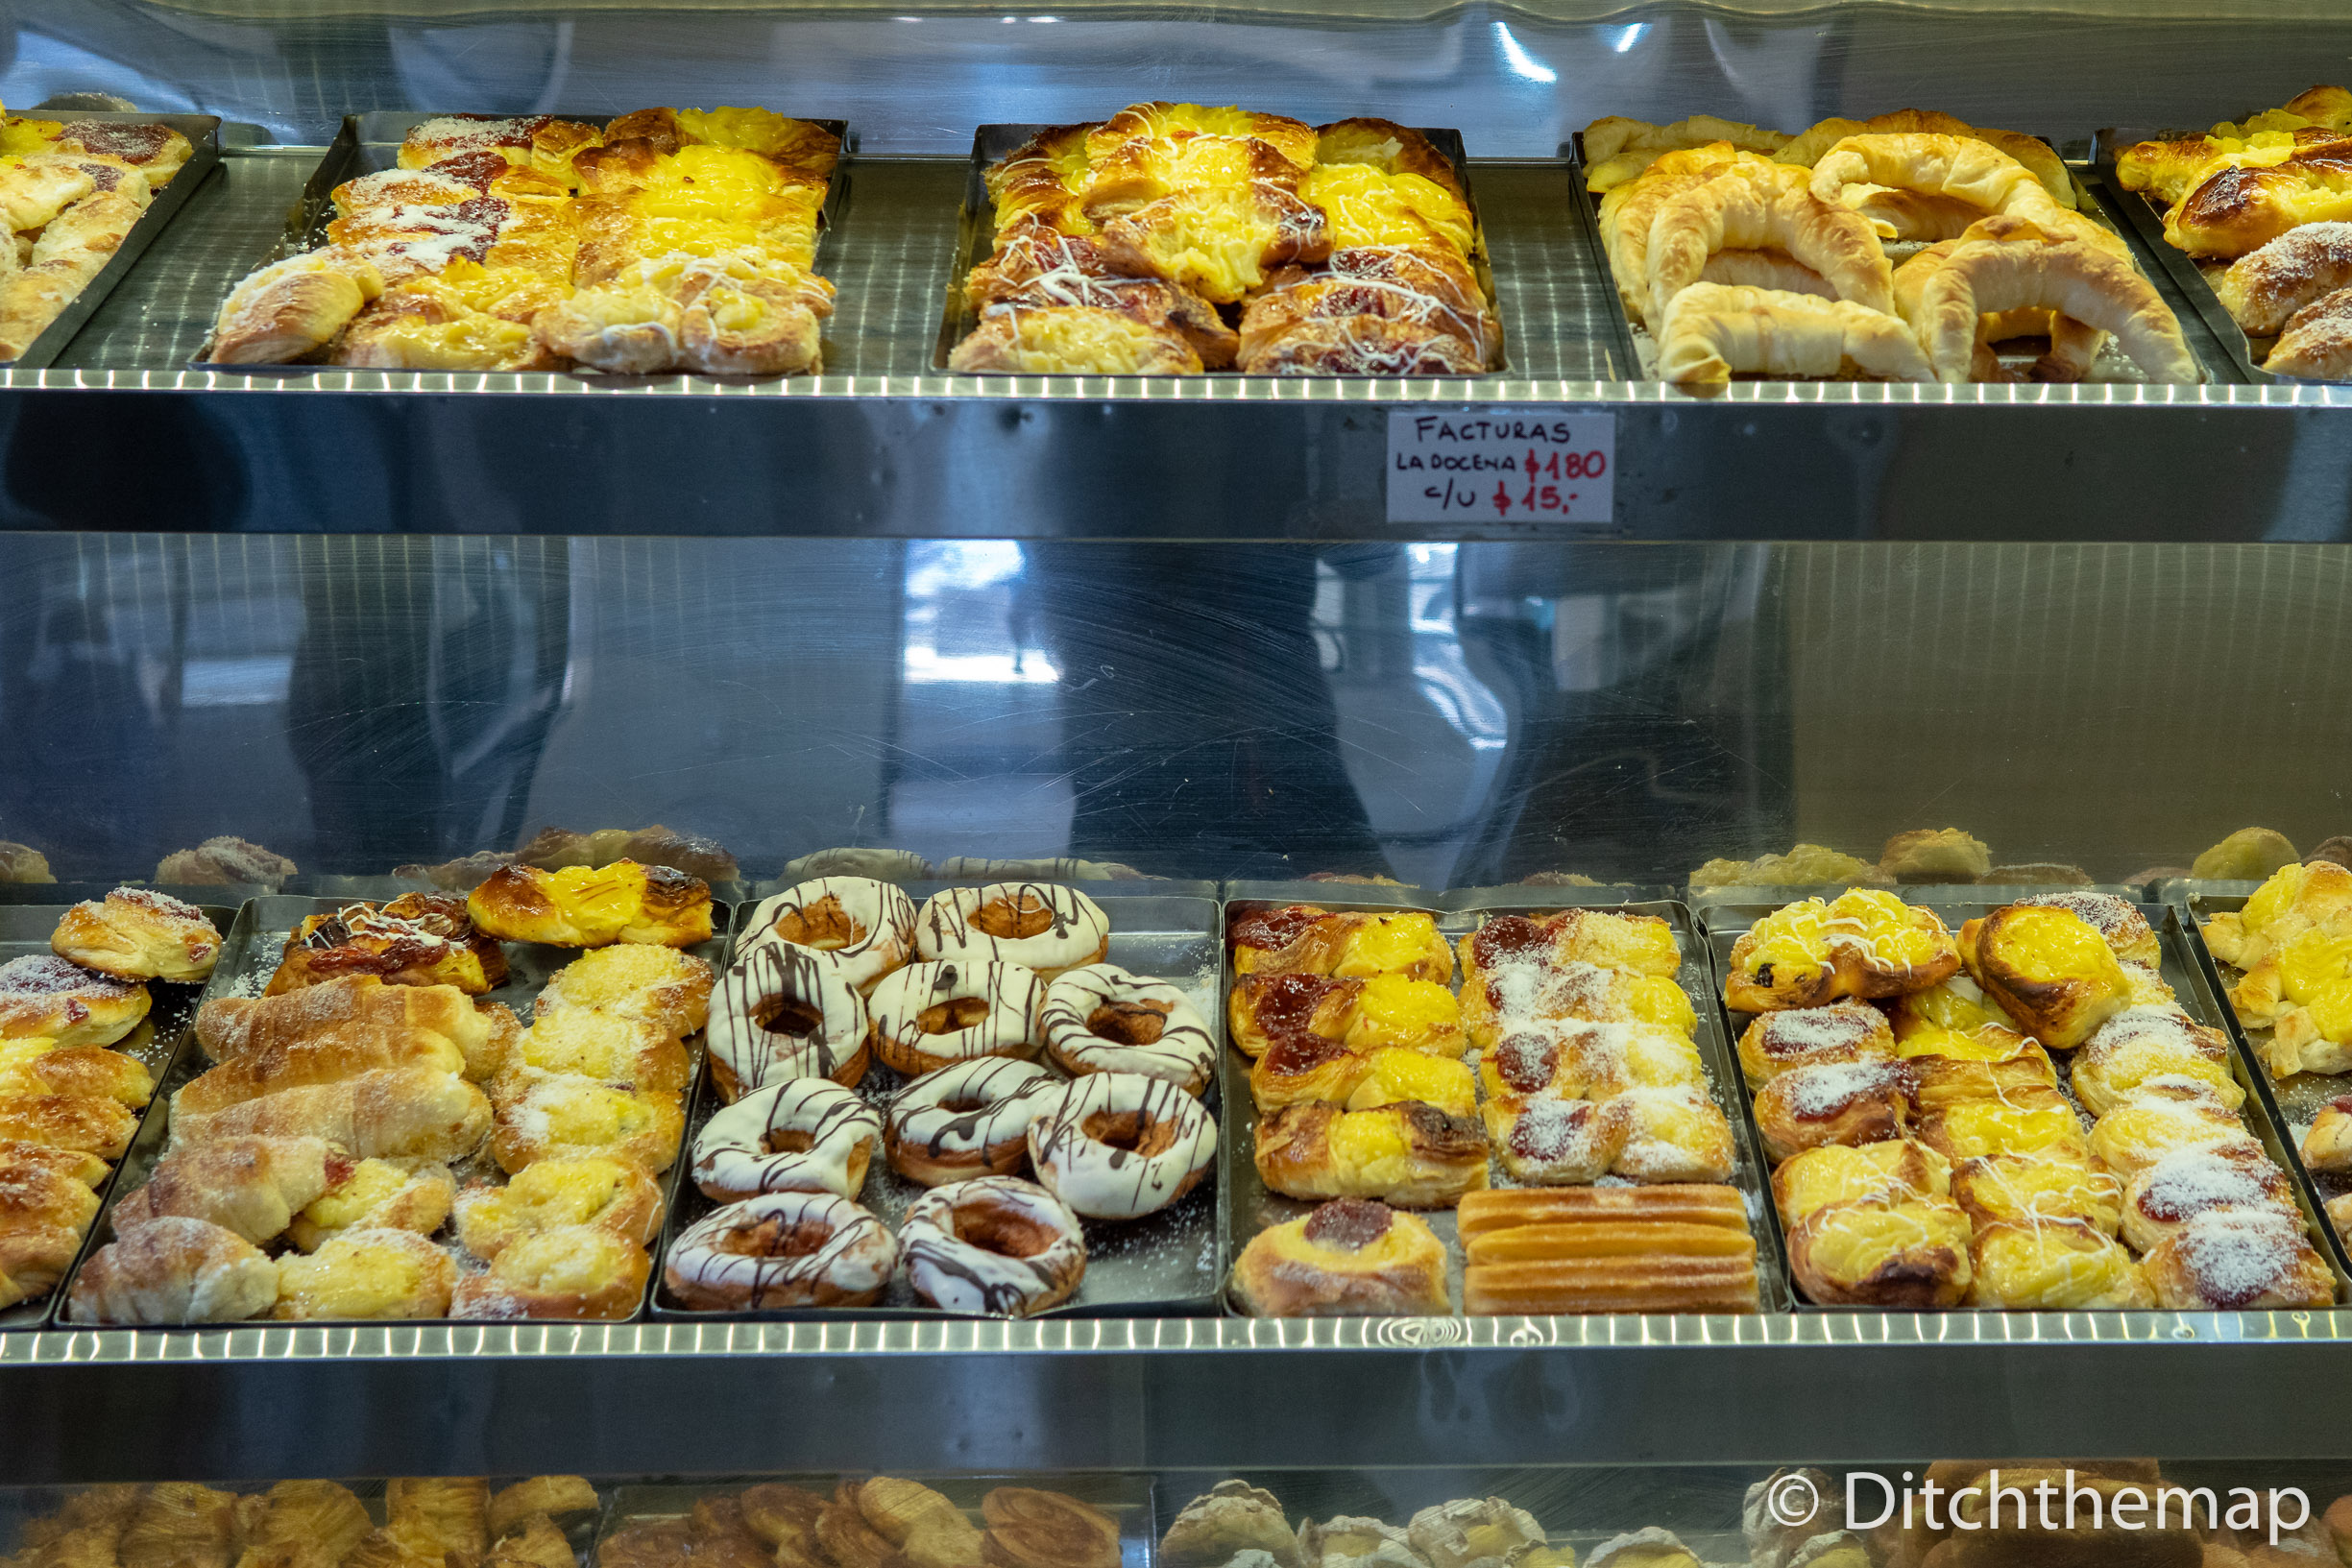 Variety of Argentine Pastries